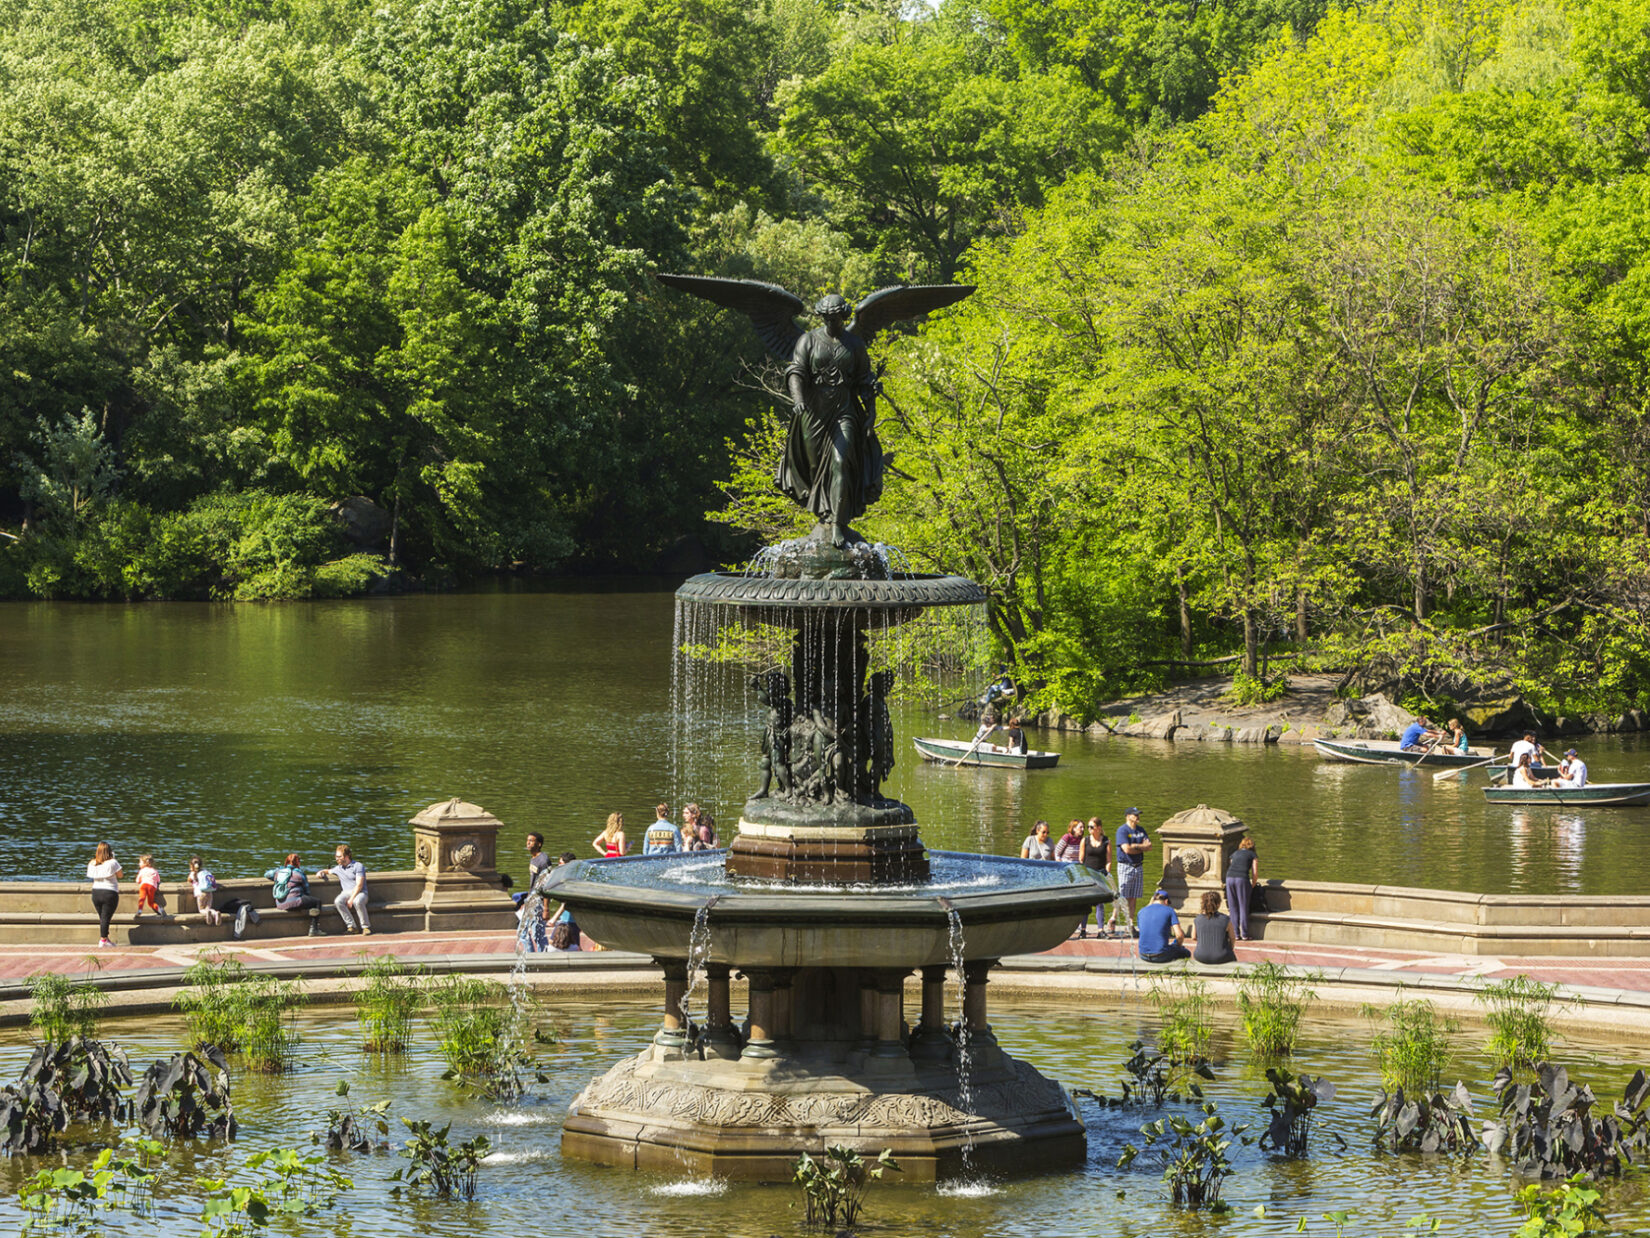 Bethesda Fountain with parkgoers behind it and boaters on the Lake behind them